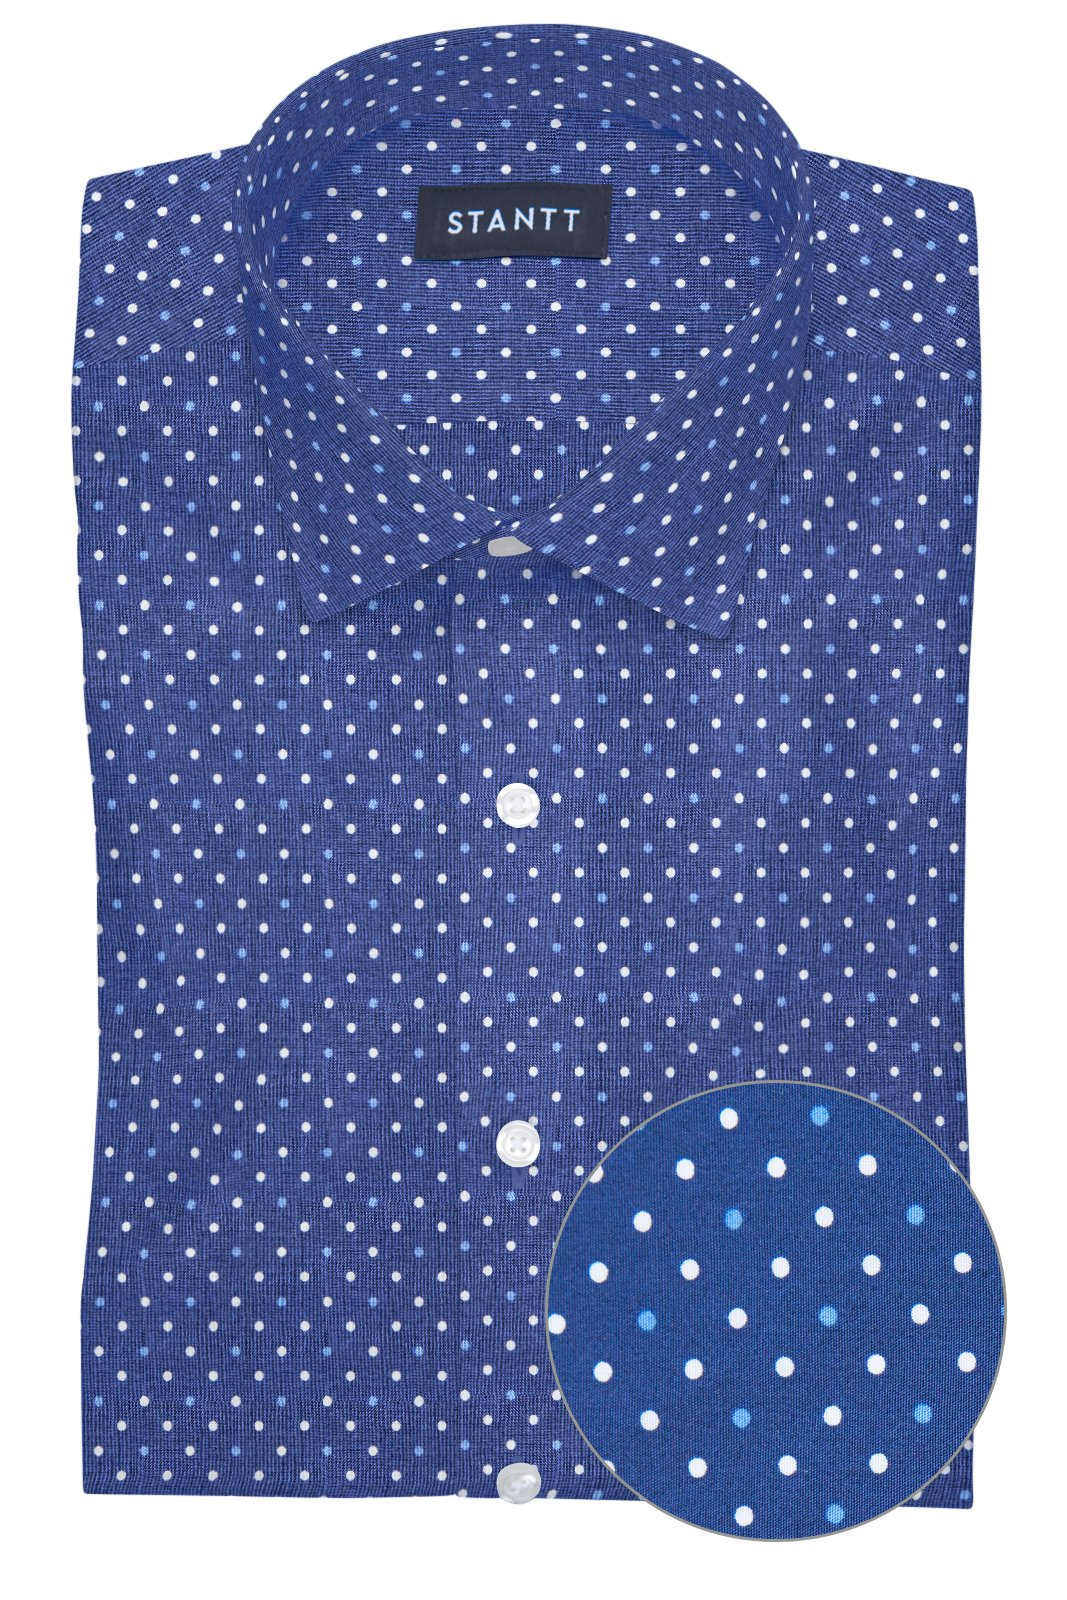 Navy and White Contemporary Dots: Modified-Spread Collar, Barrel Cuff